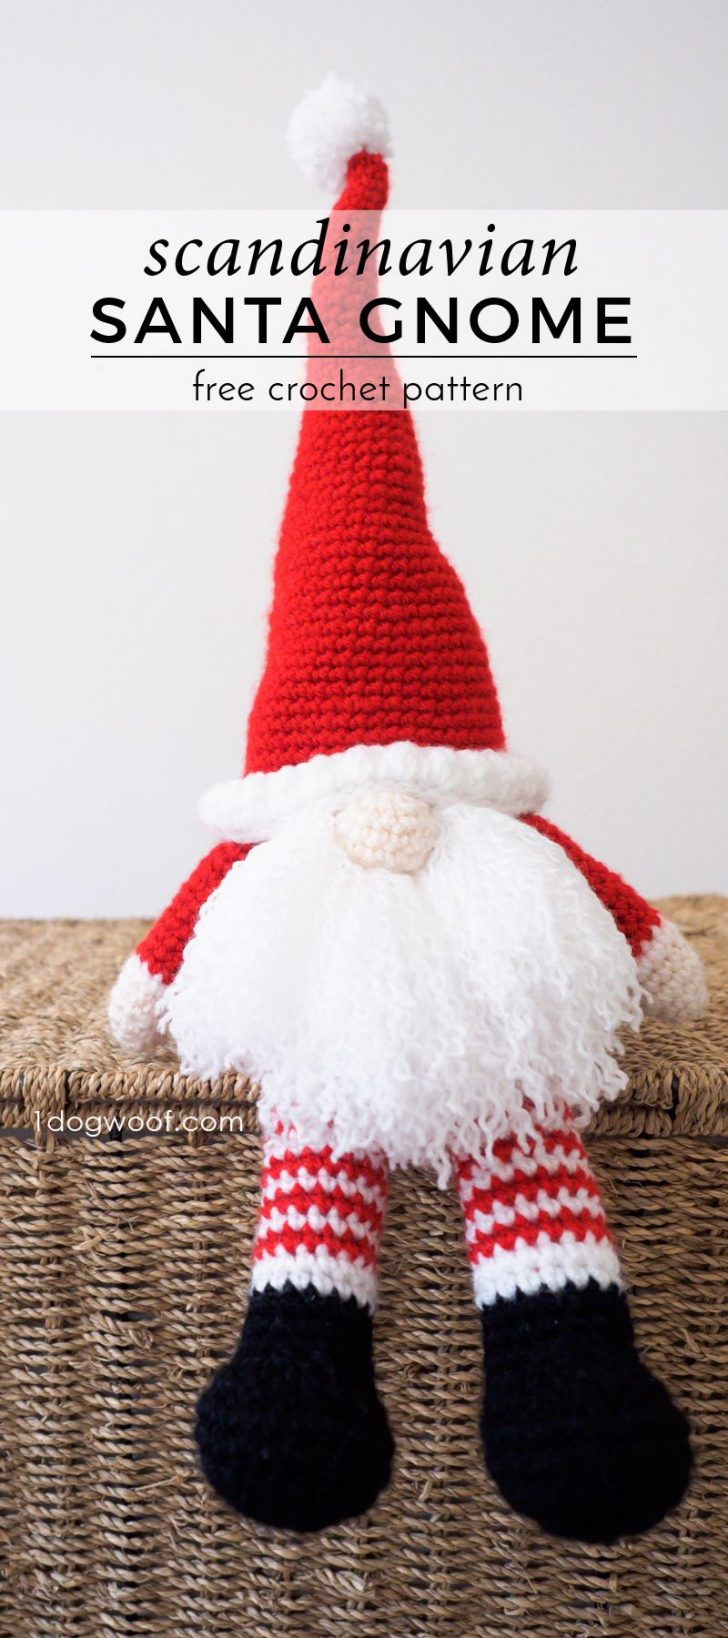 Free Printable Christmas Crochet Patterns